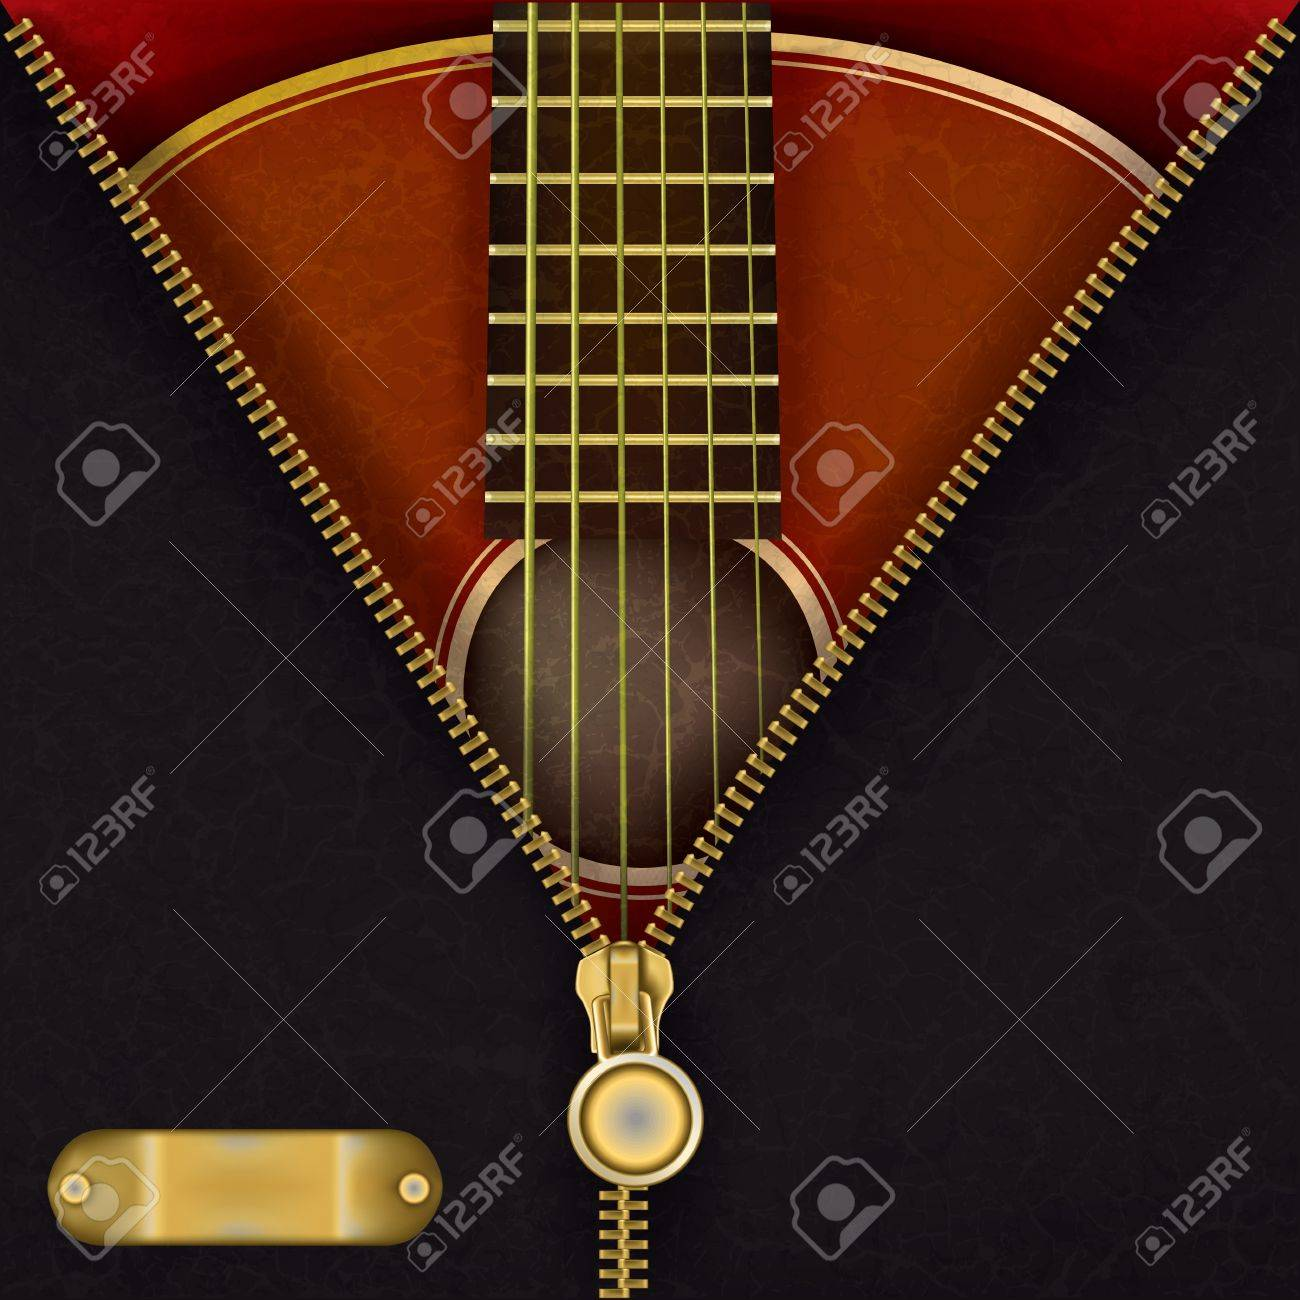 abstract music red background with guitar and open zipper Stock Vector - 10751619